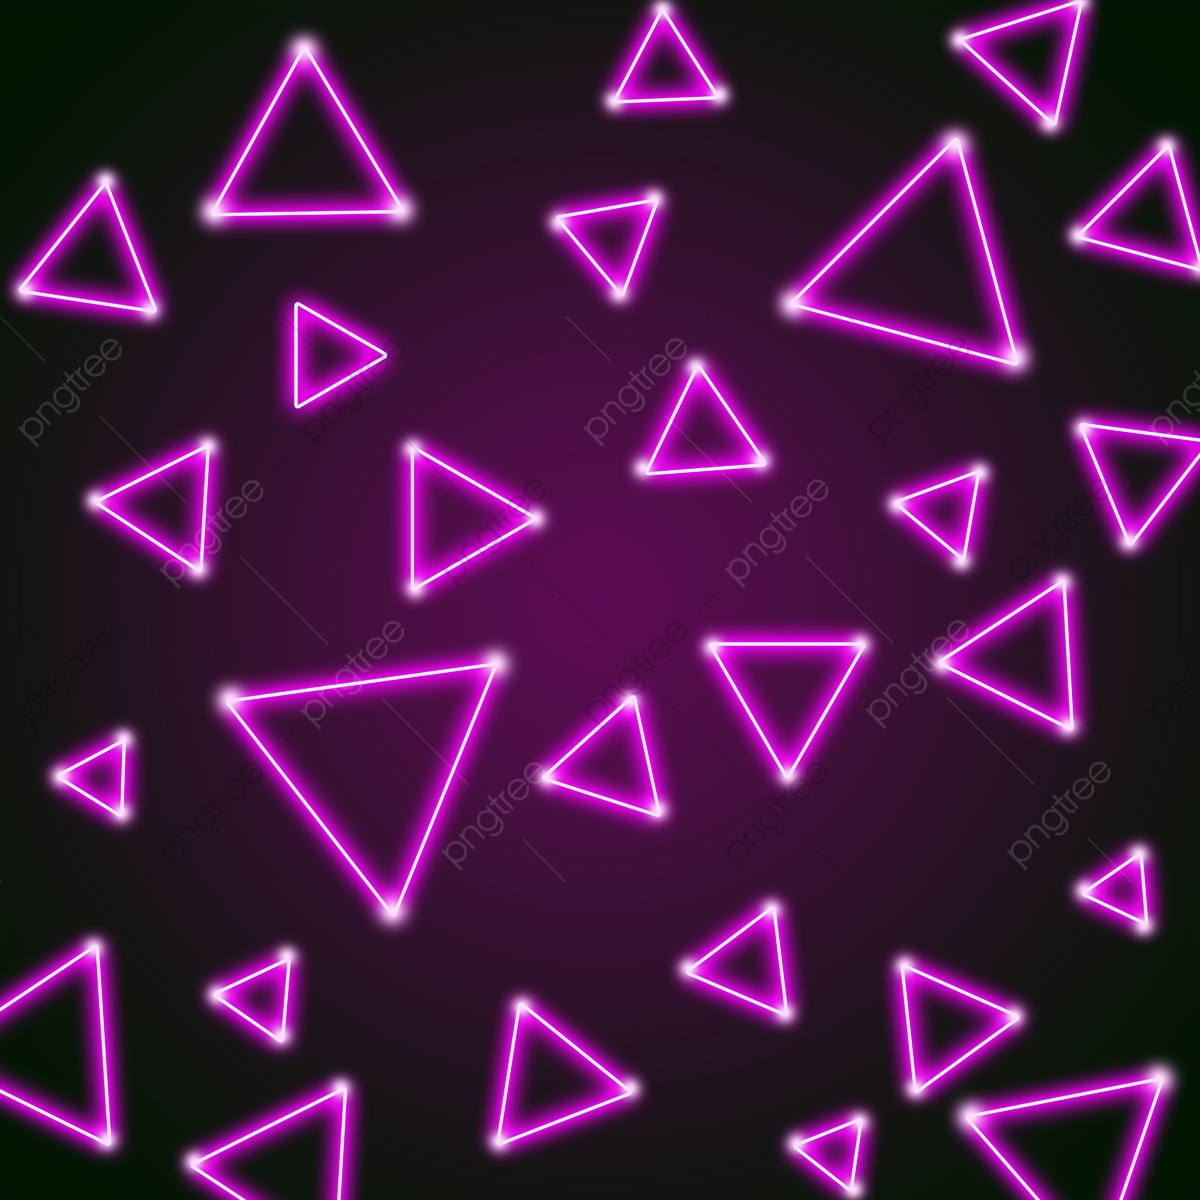 Purple Neon Background, Lighting Effect, Neon, Neon Effect.